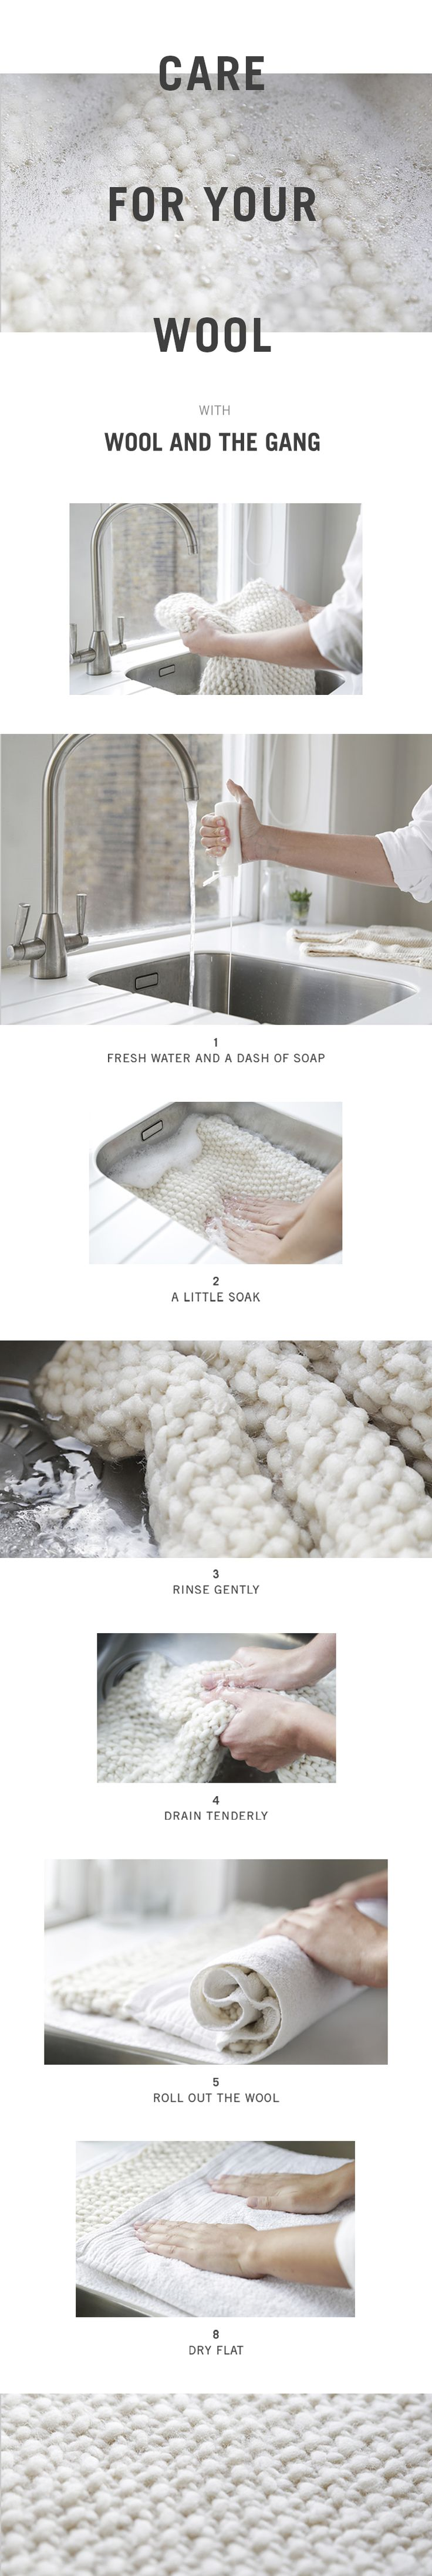 Learn how to care for your soft and chunky wool - woolandthegang.com